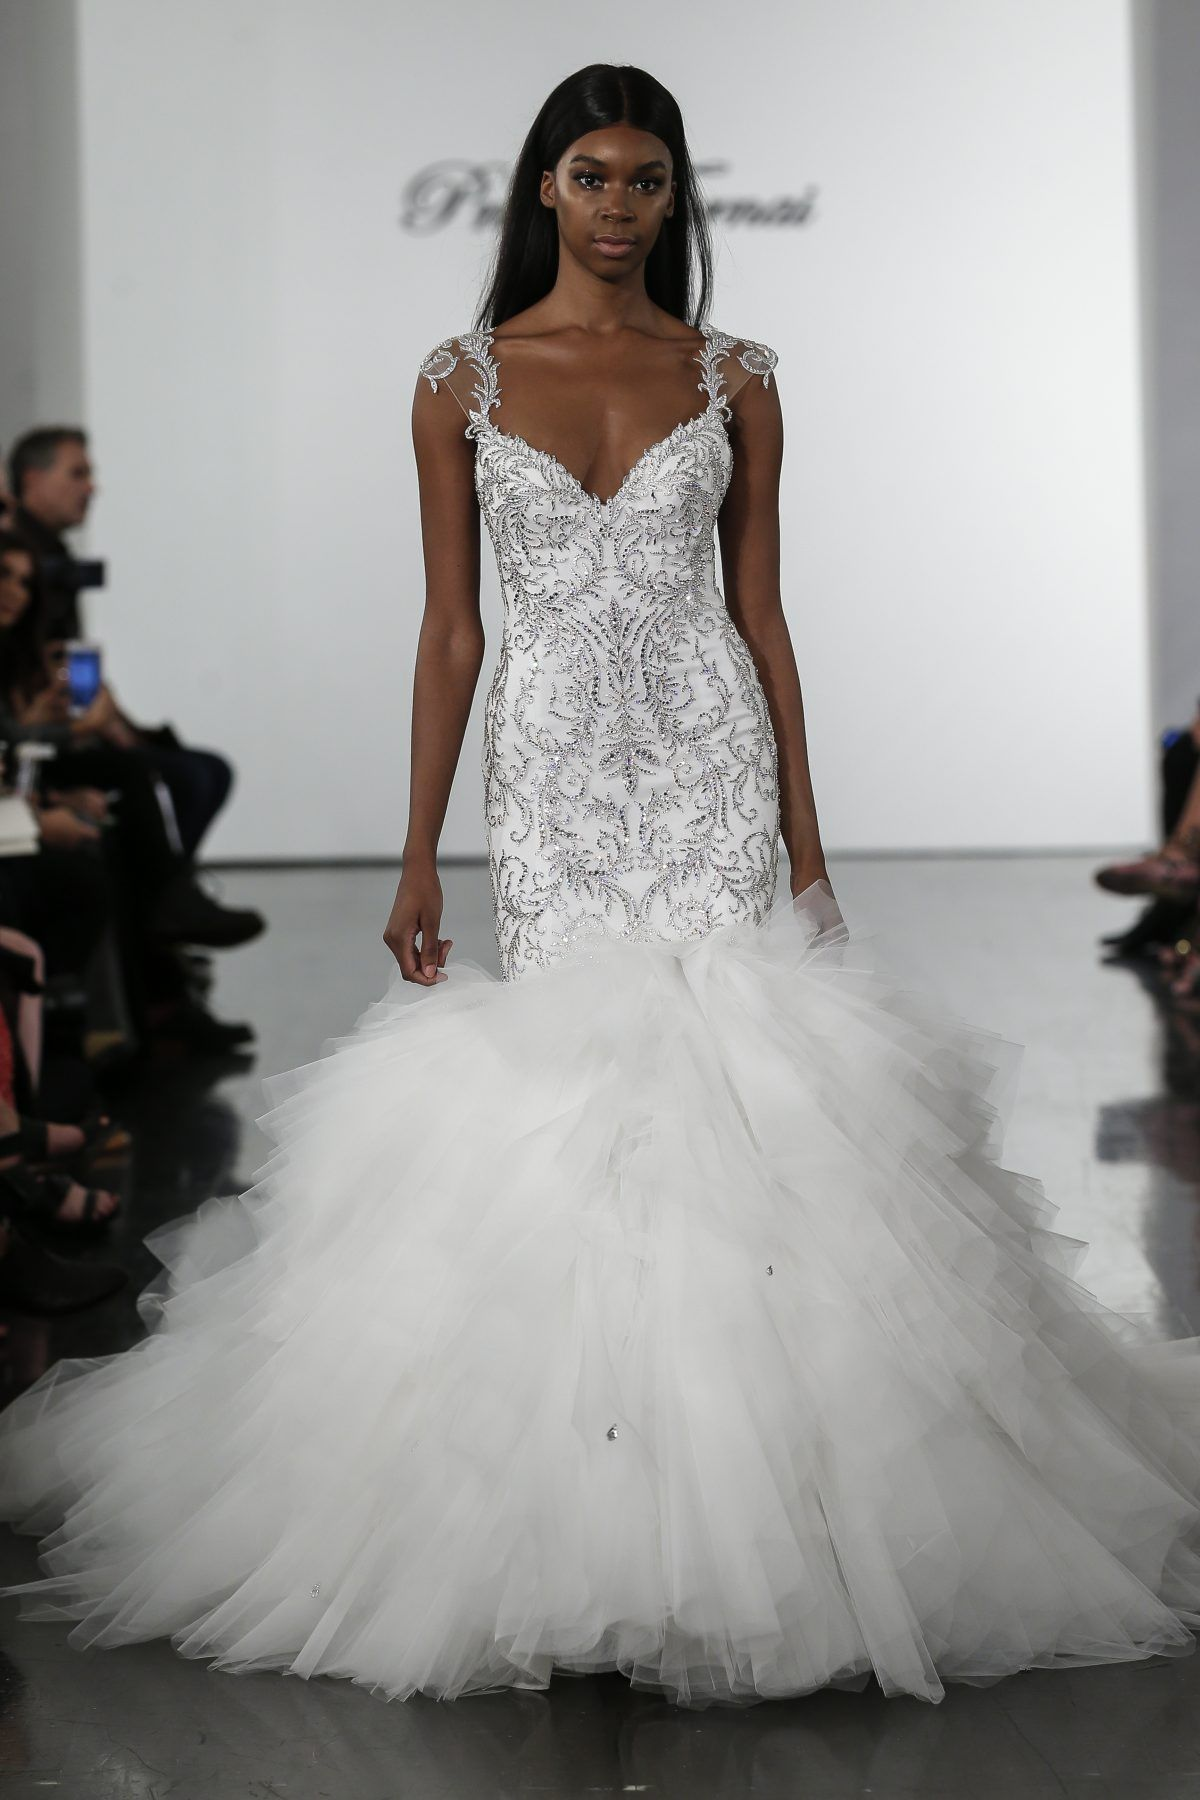 Embellished Mermaid Wedding Dress With Tulle Skirt Pnina Tornai Style 4718 Wedding Dresses Kleinfeld Pnina Tornai Wedding Dress Kleinfeld Bridal